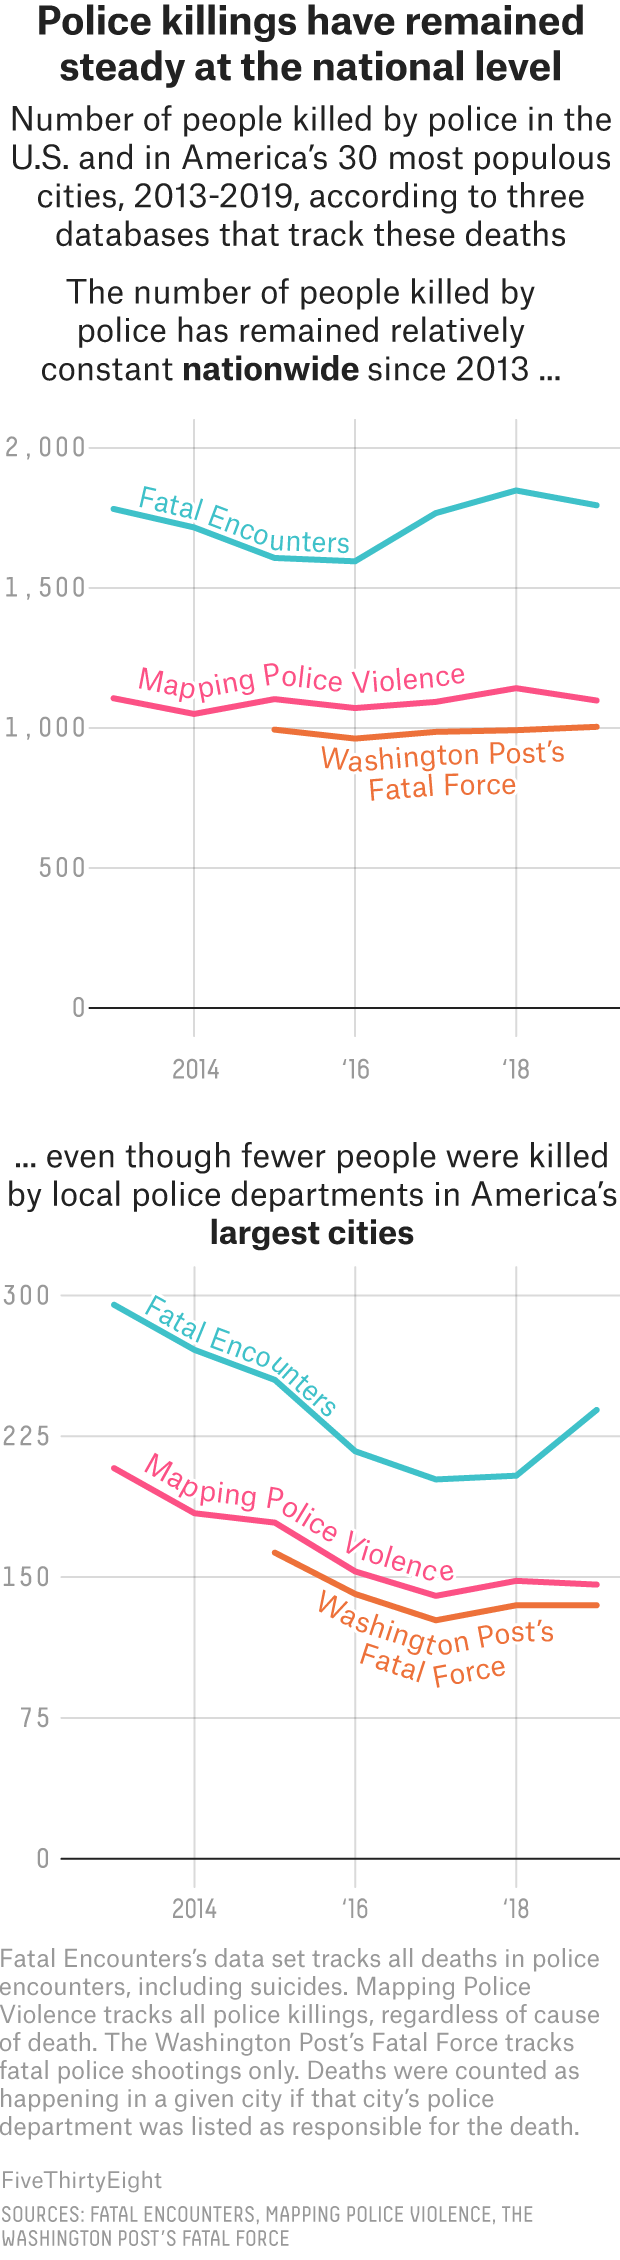 Police Are Killing Fewer People In Big Cities, But More In Suburban And Rural America  3